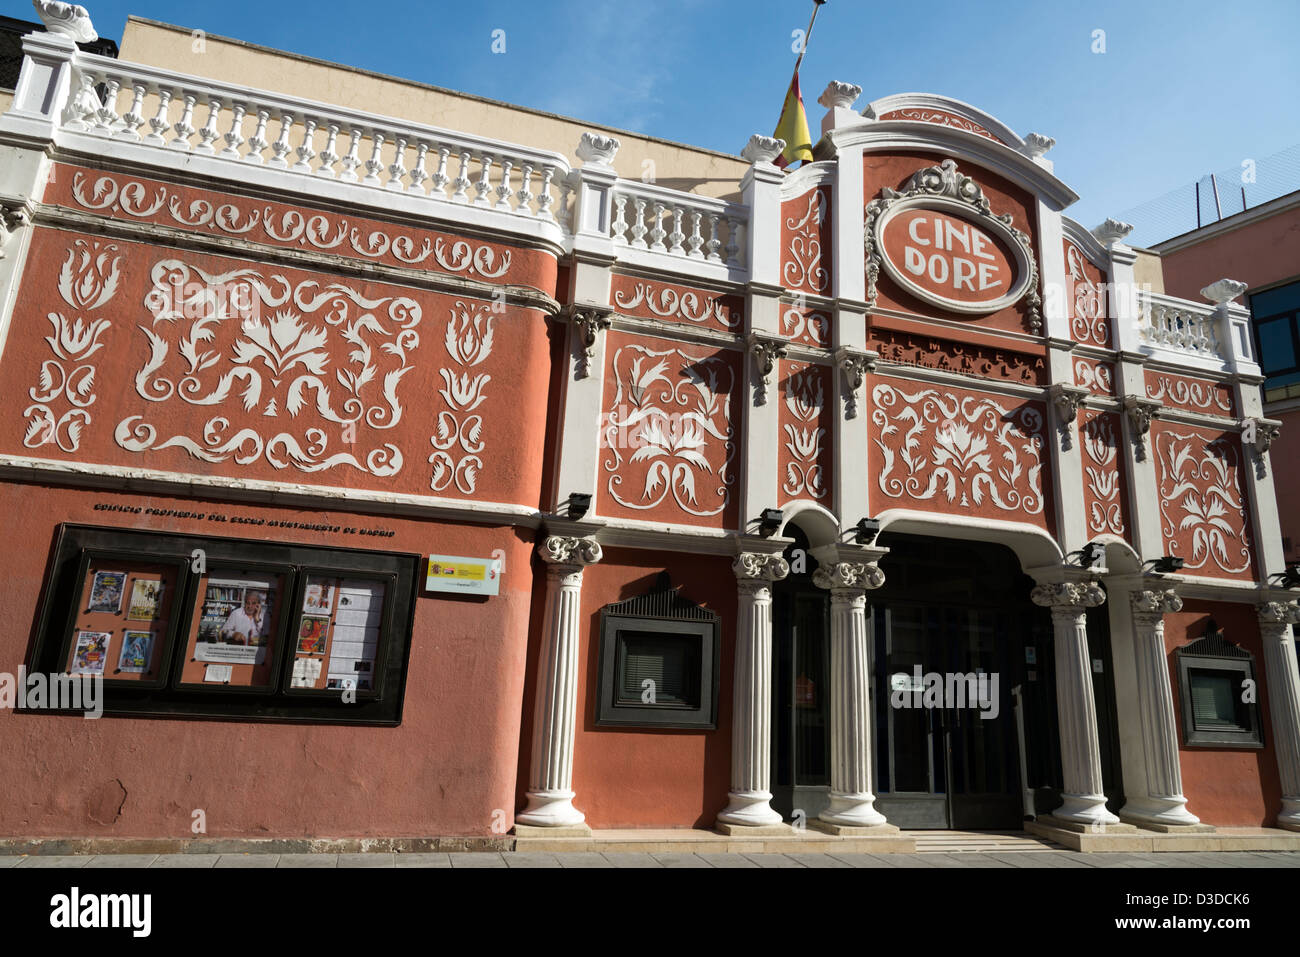 Cine Dore in Anton Martin, Madrid, Spain - Stock Image